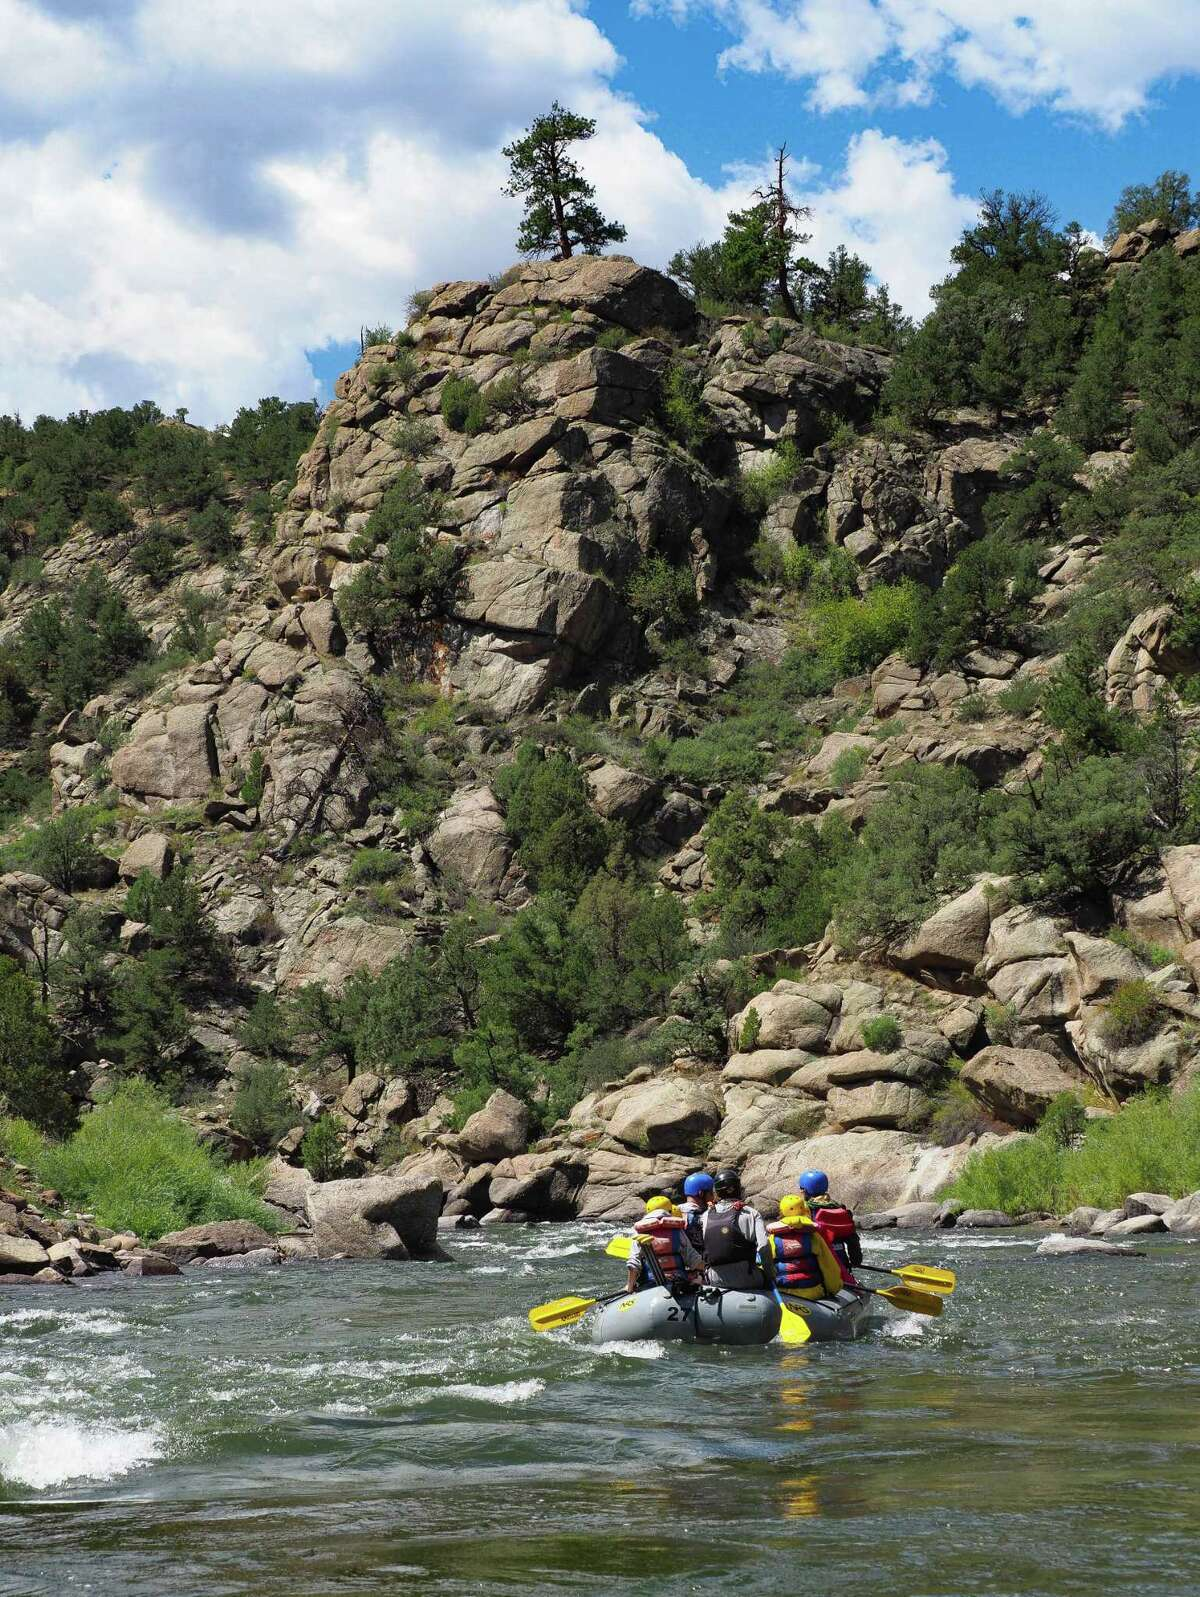 Rafts glide through Browns Canyon on the Arkansas River in Colorado.